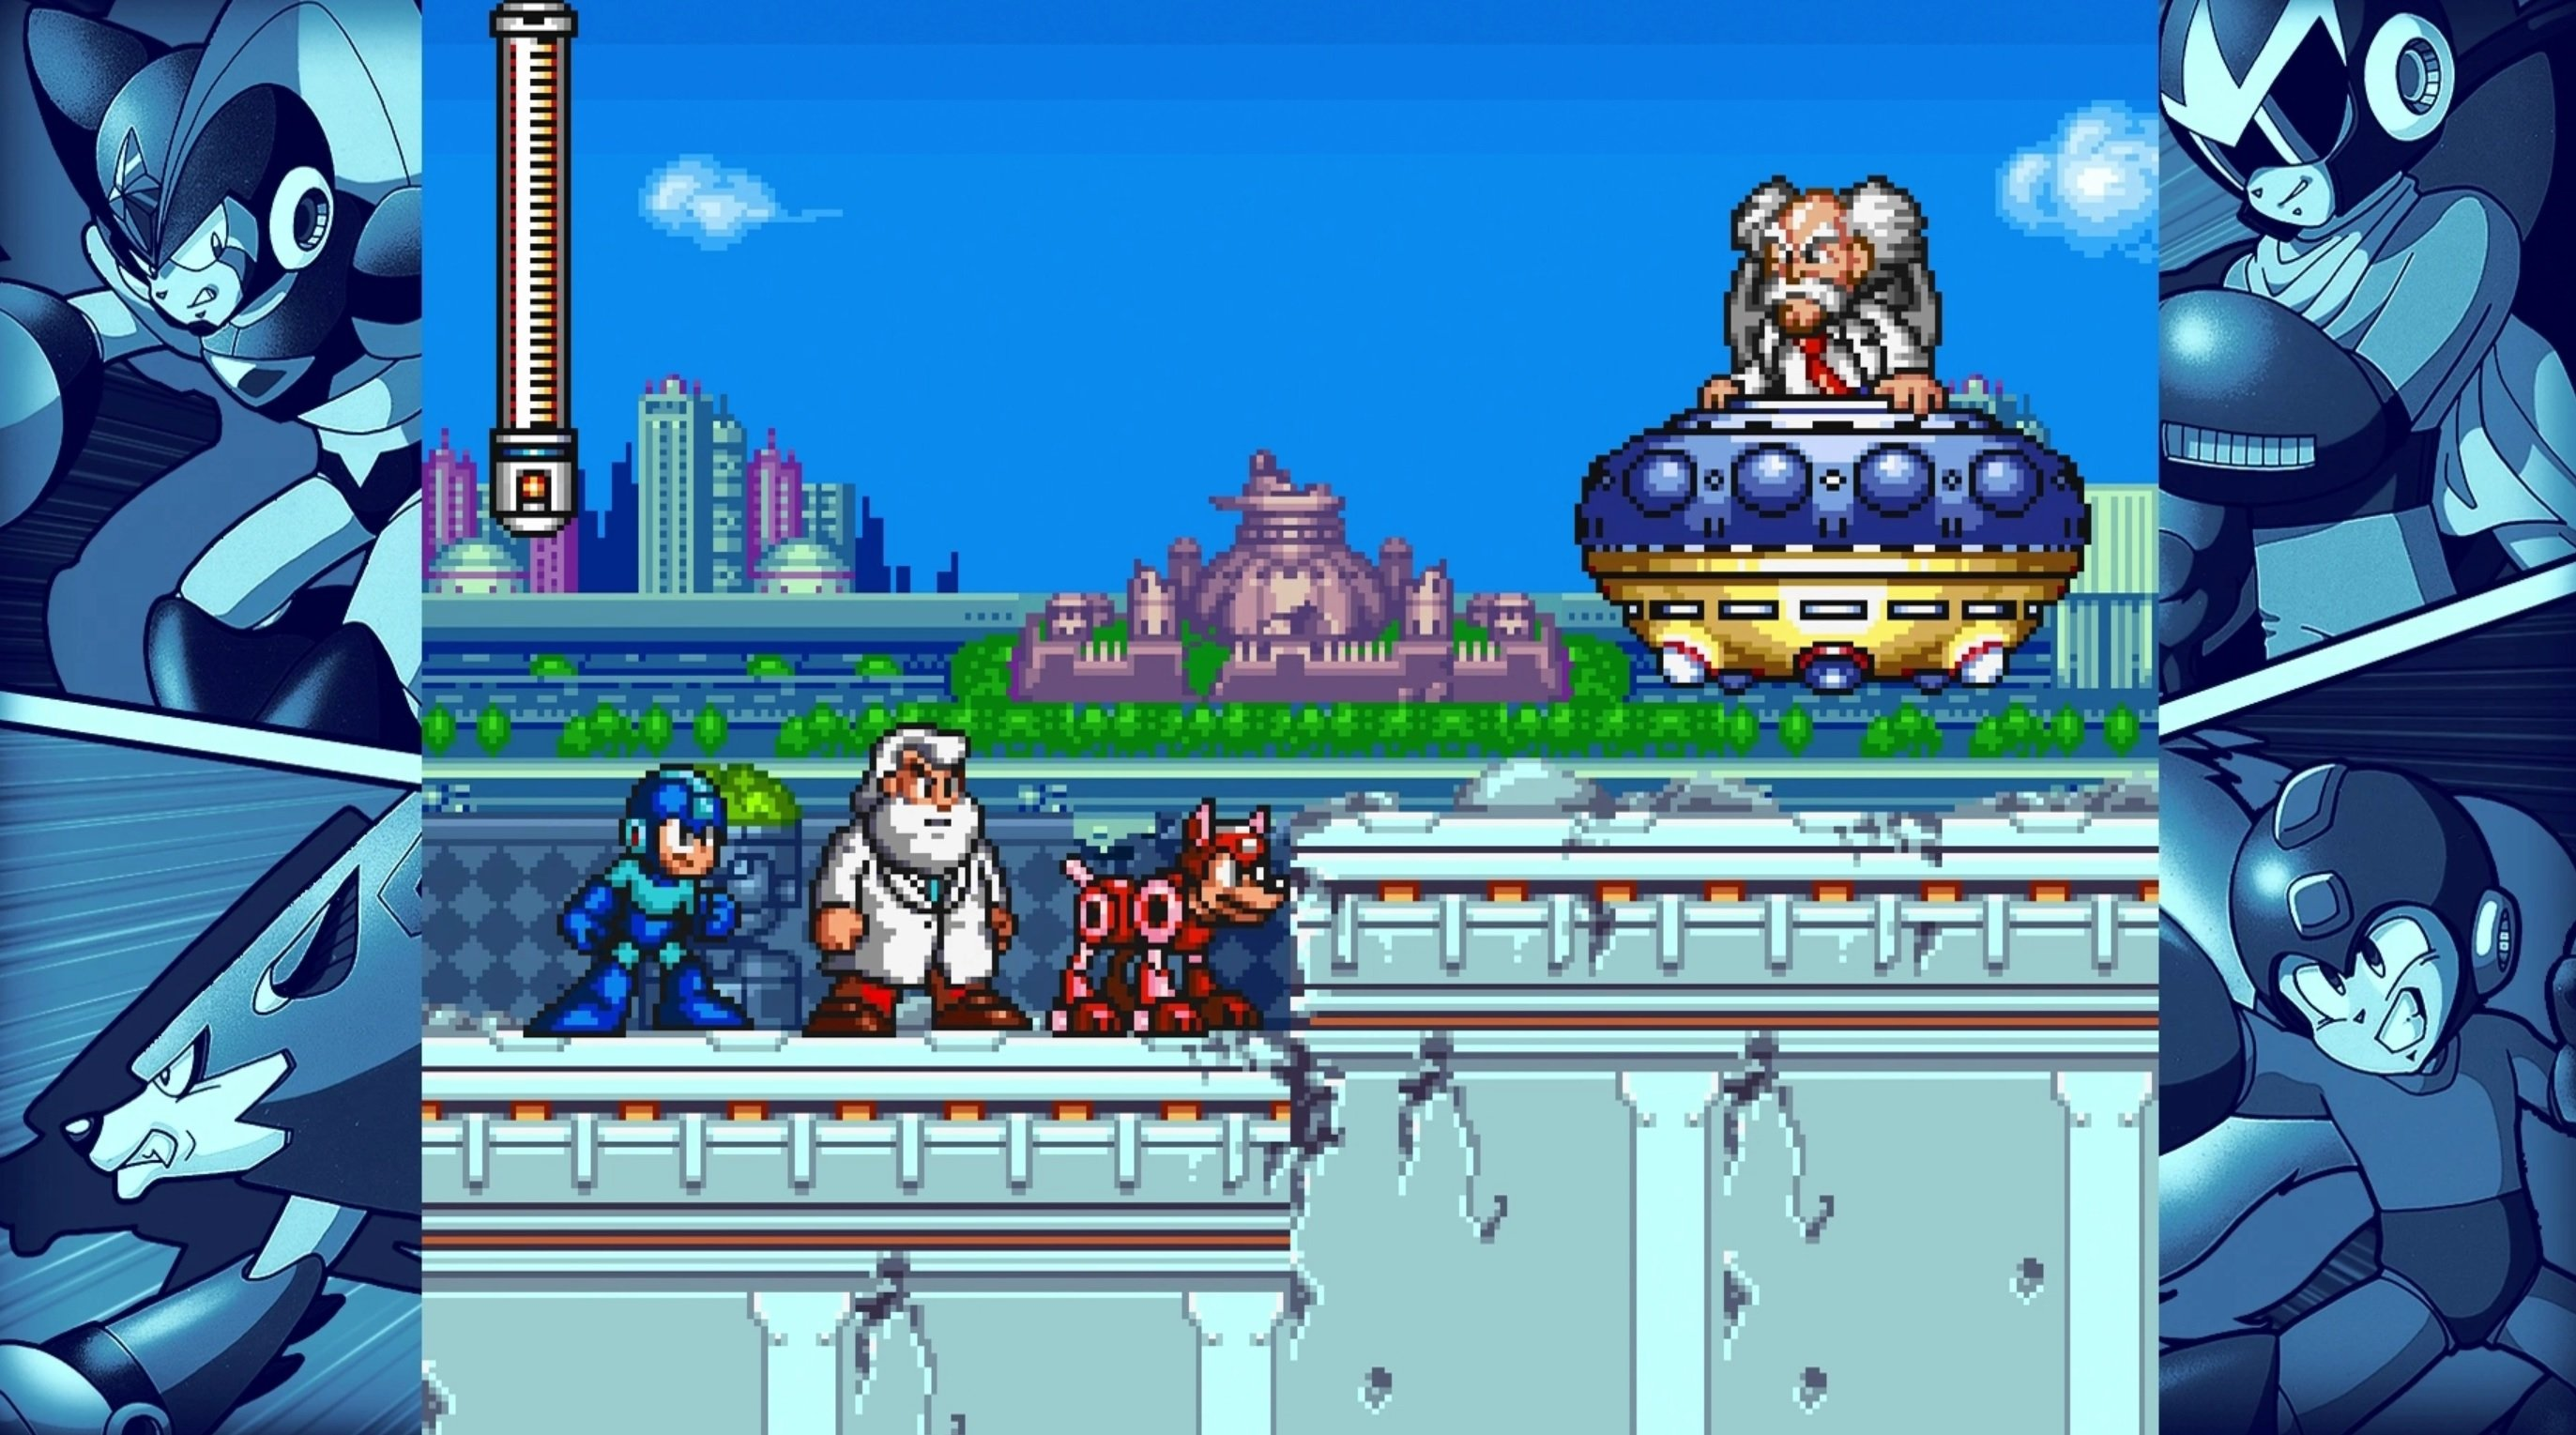 The Mega Man movie is somehow still alive in 2020 screenshot